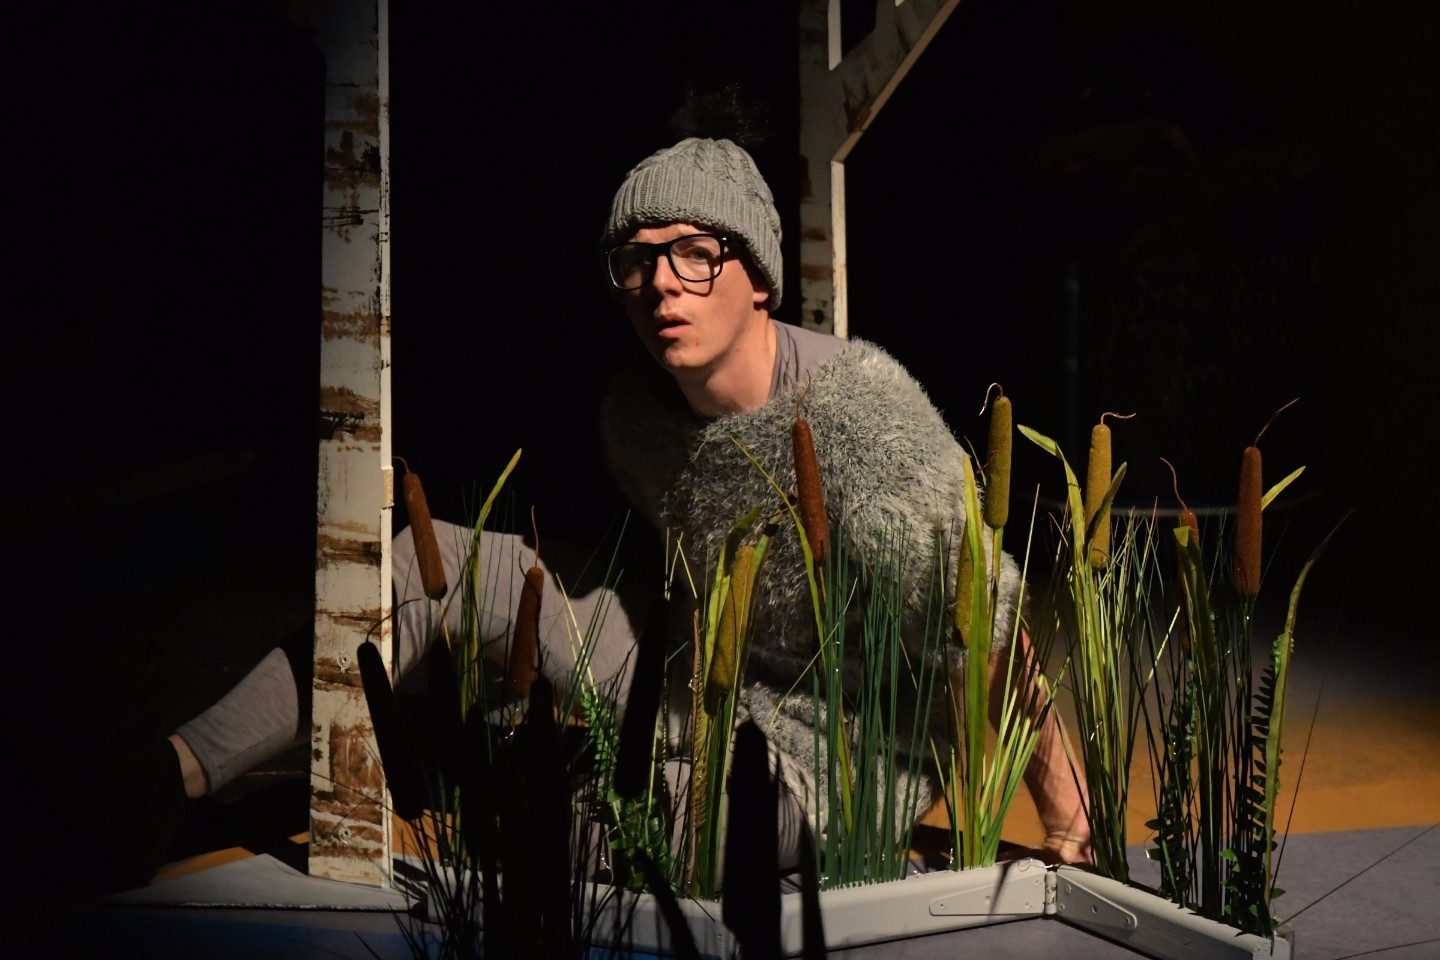 Danny Childs as the Ugly Duckling- Ugly Duckling by Emma Reeves, photo by Brian Slater 5 (4)